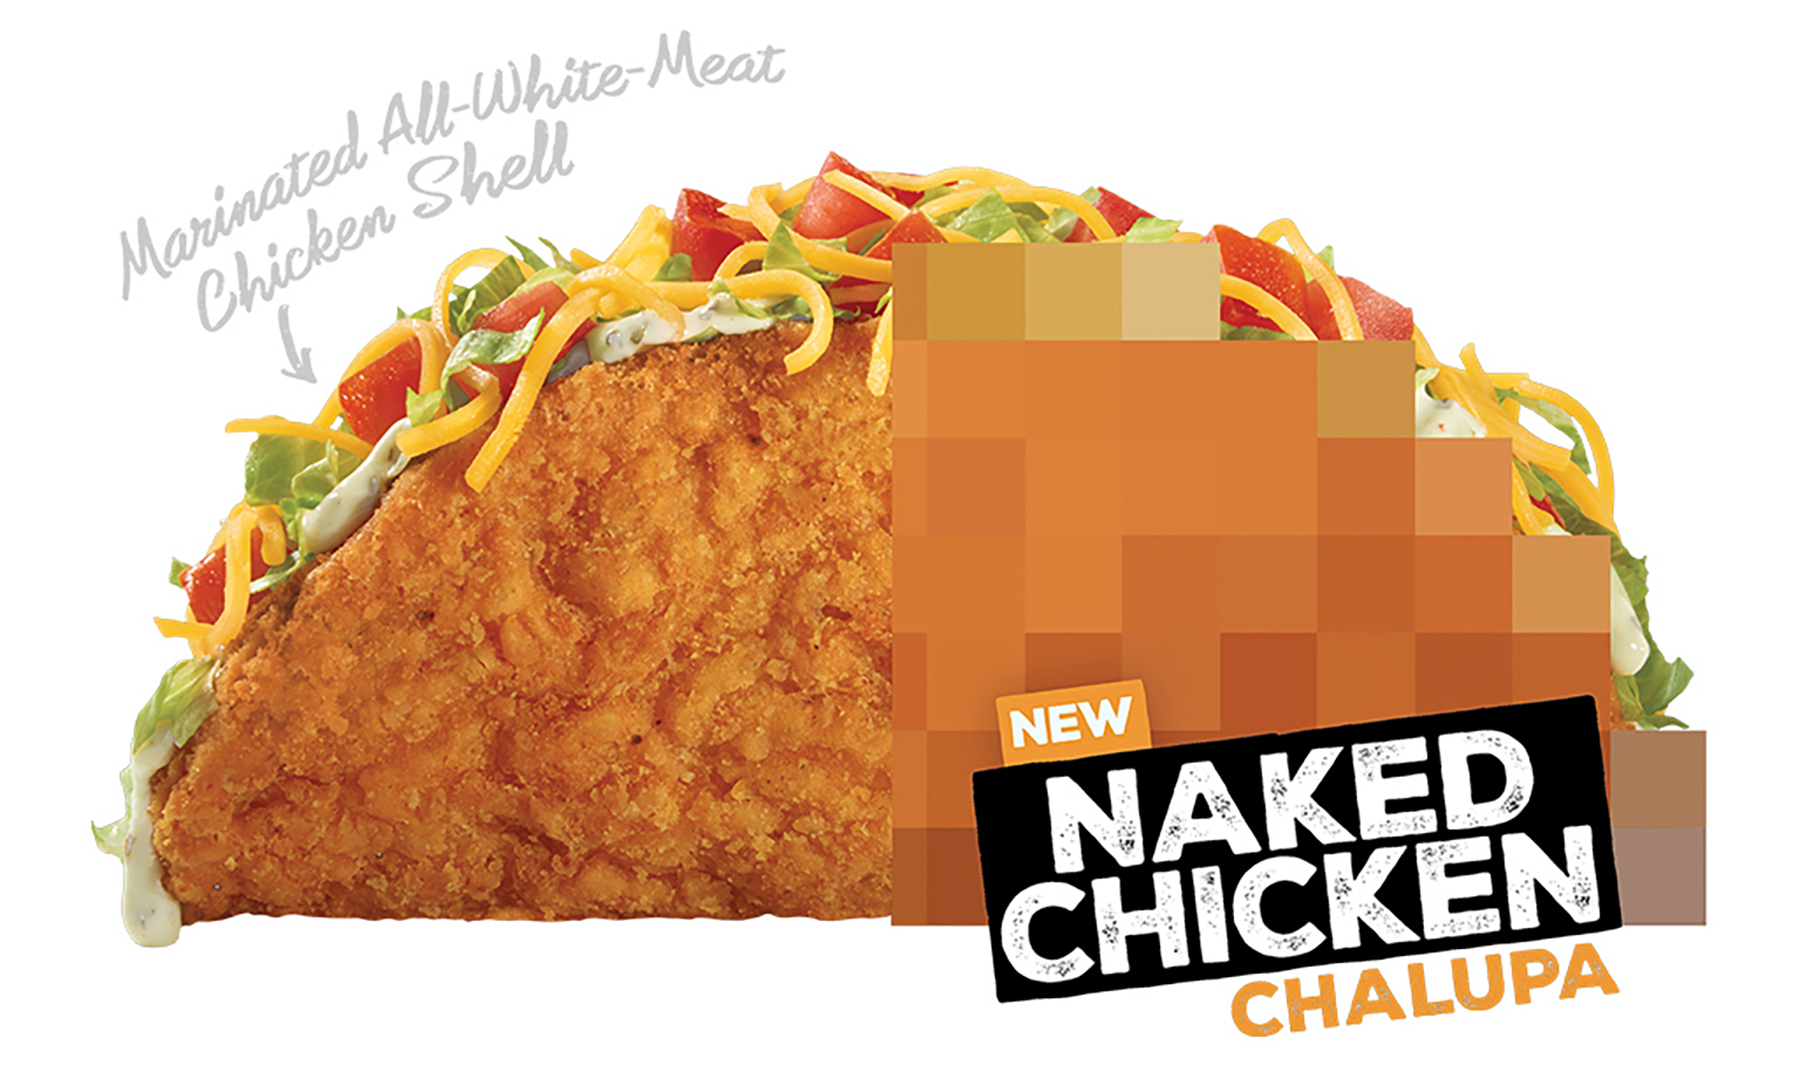 NakedChickenChalupa_Window_2.jpg